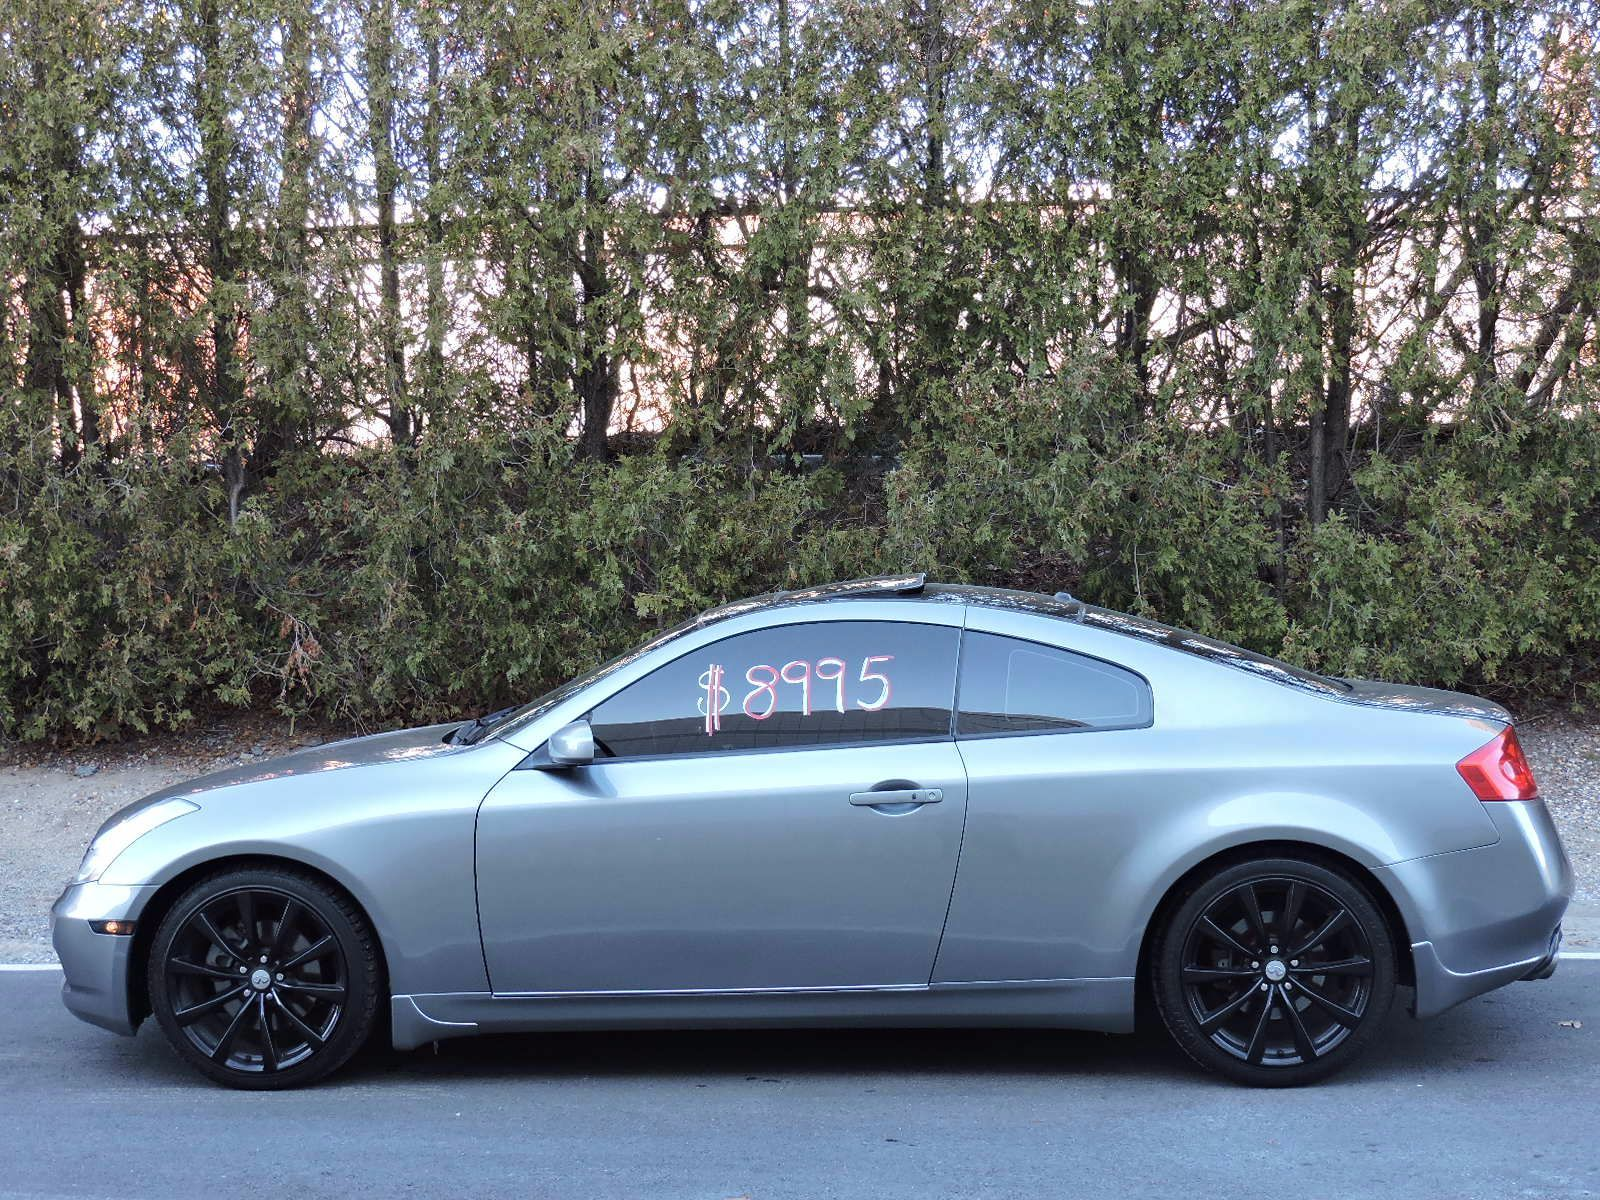 used 2006 infiniti g35 coupe at auto house usa saugus. Black Bedroom Furniture Sets. Home Design Ideas